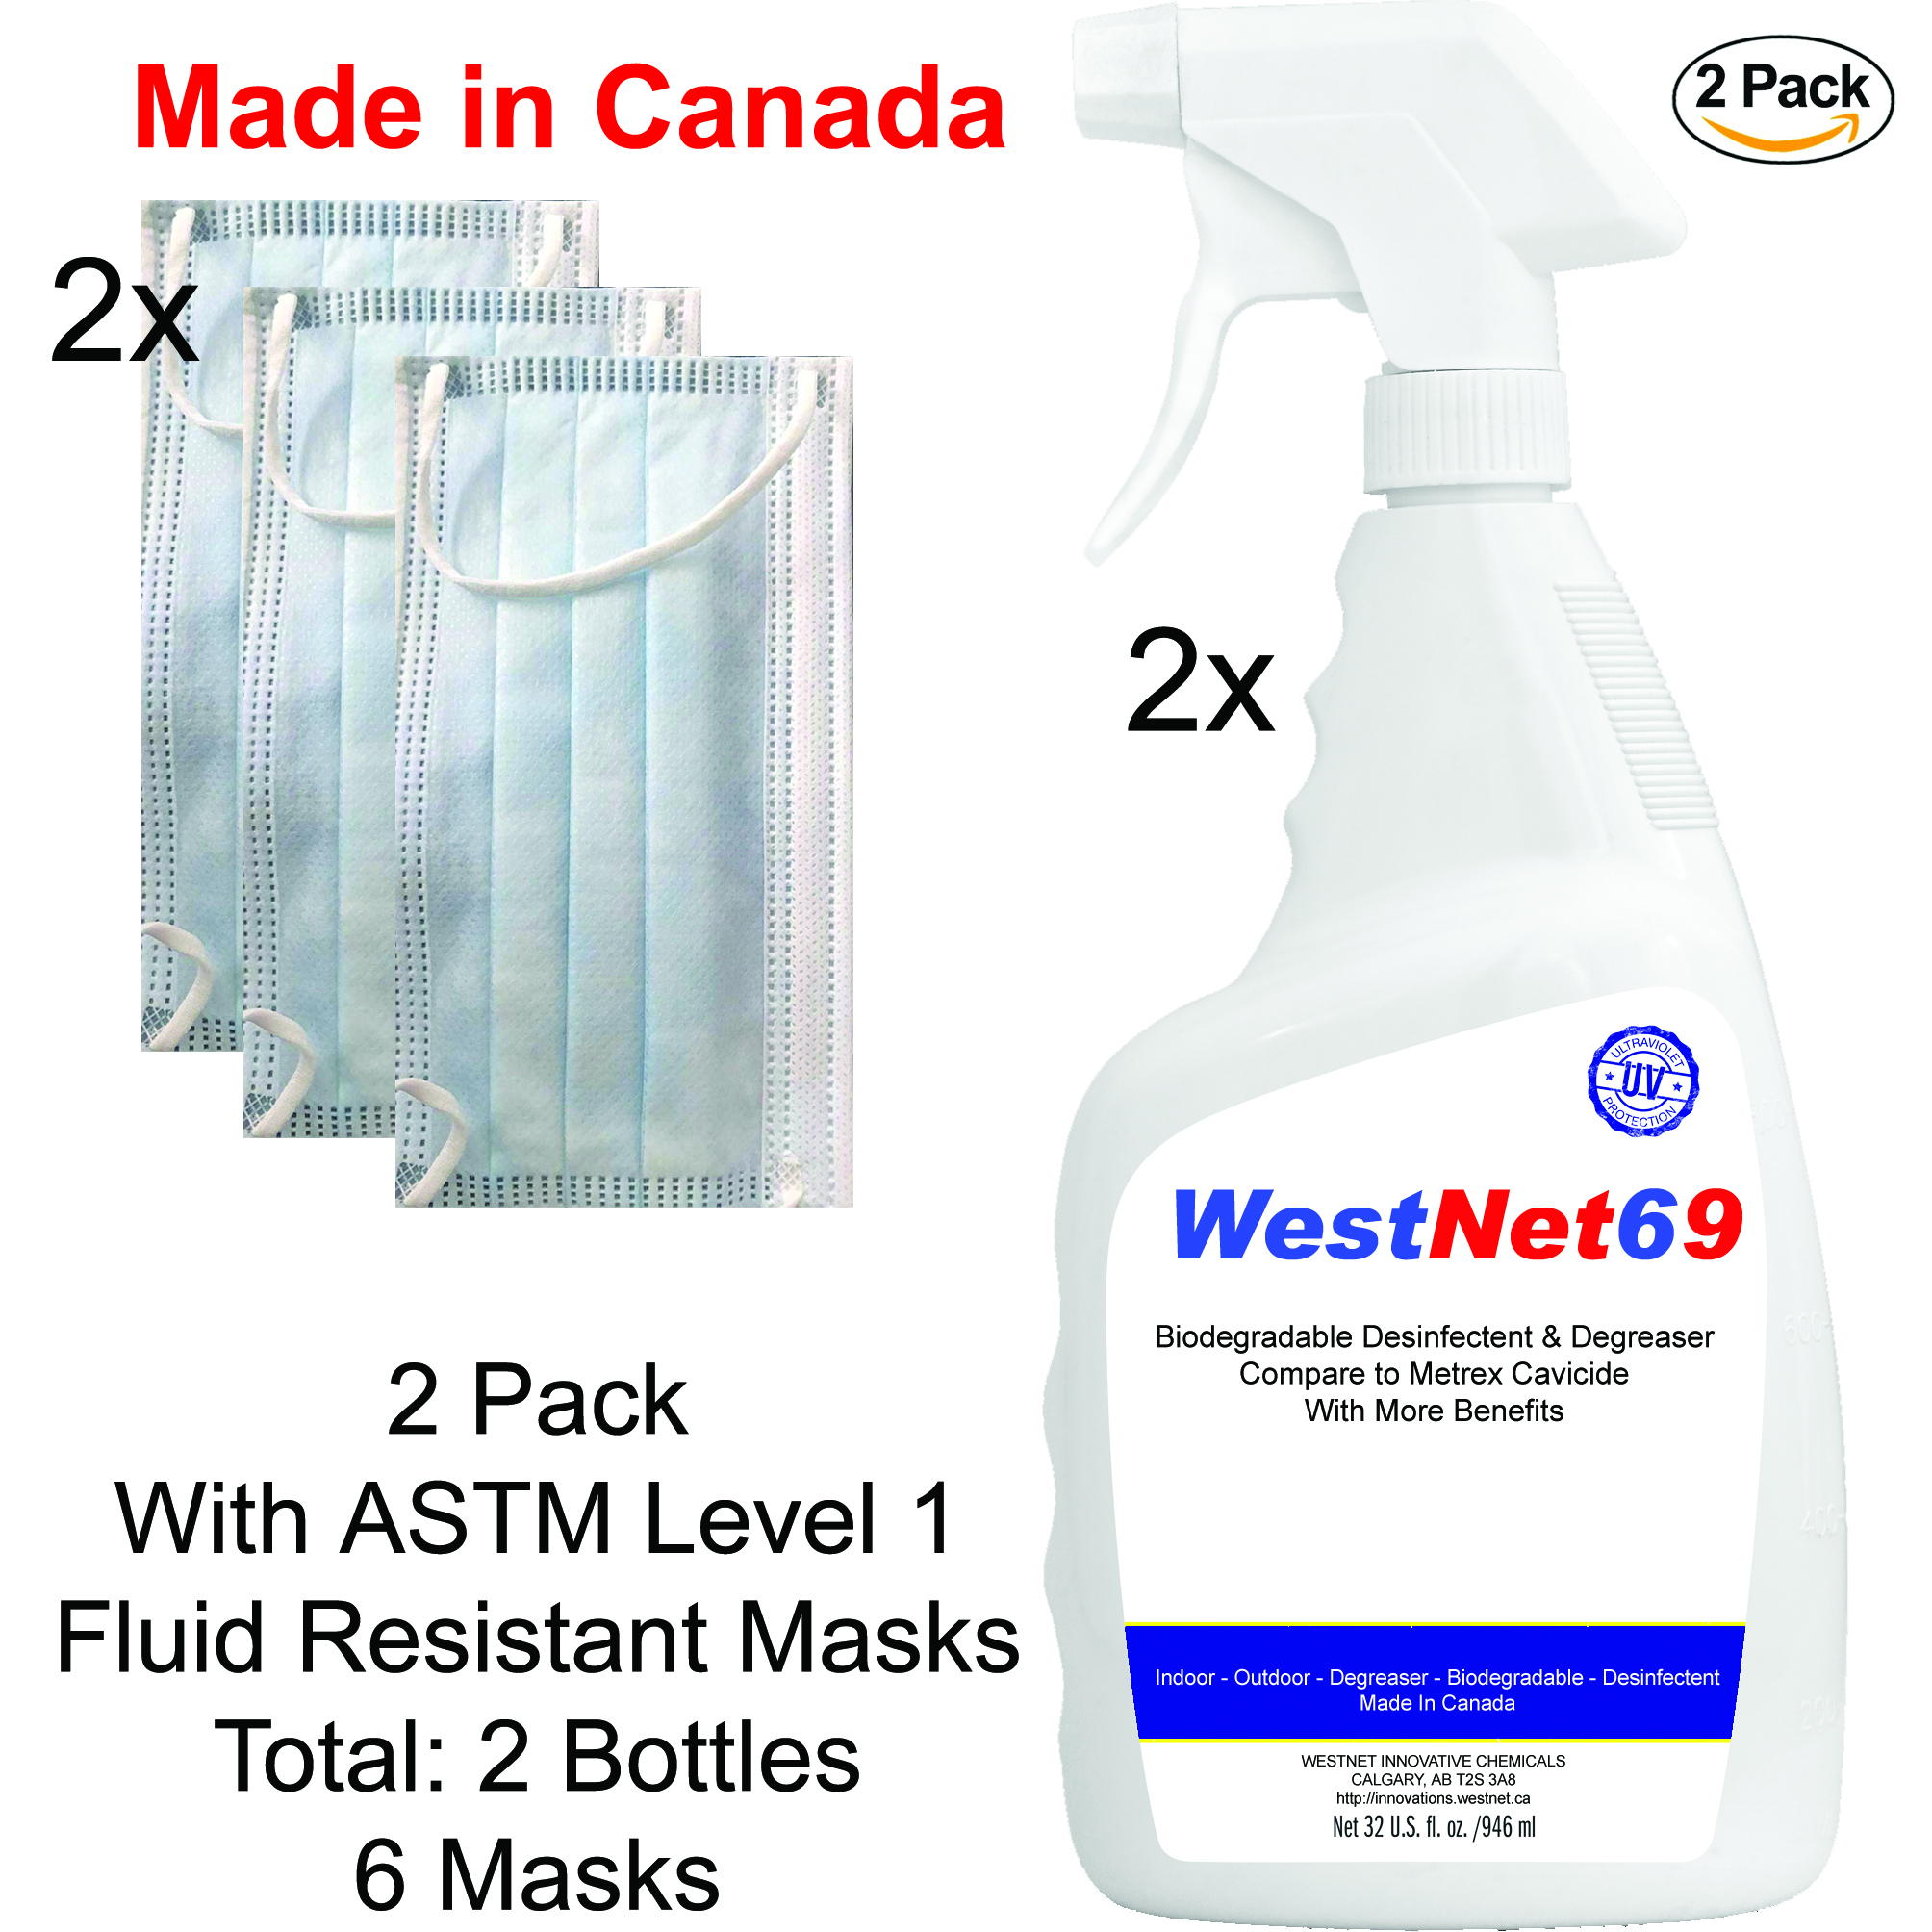 2x Biodegradable Disinfectant Cleaner Trigger Spray 32oz 950ml w